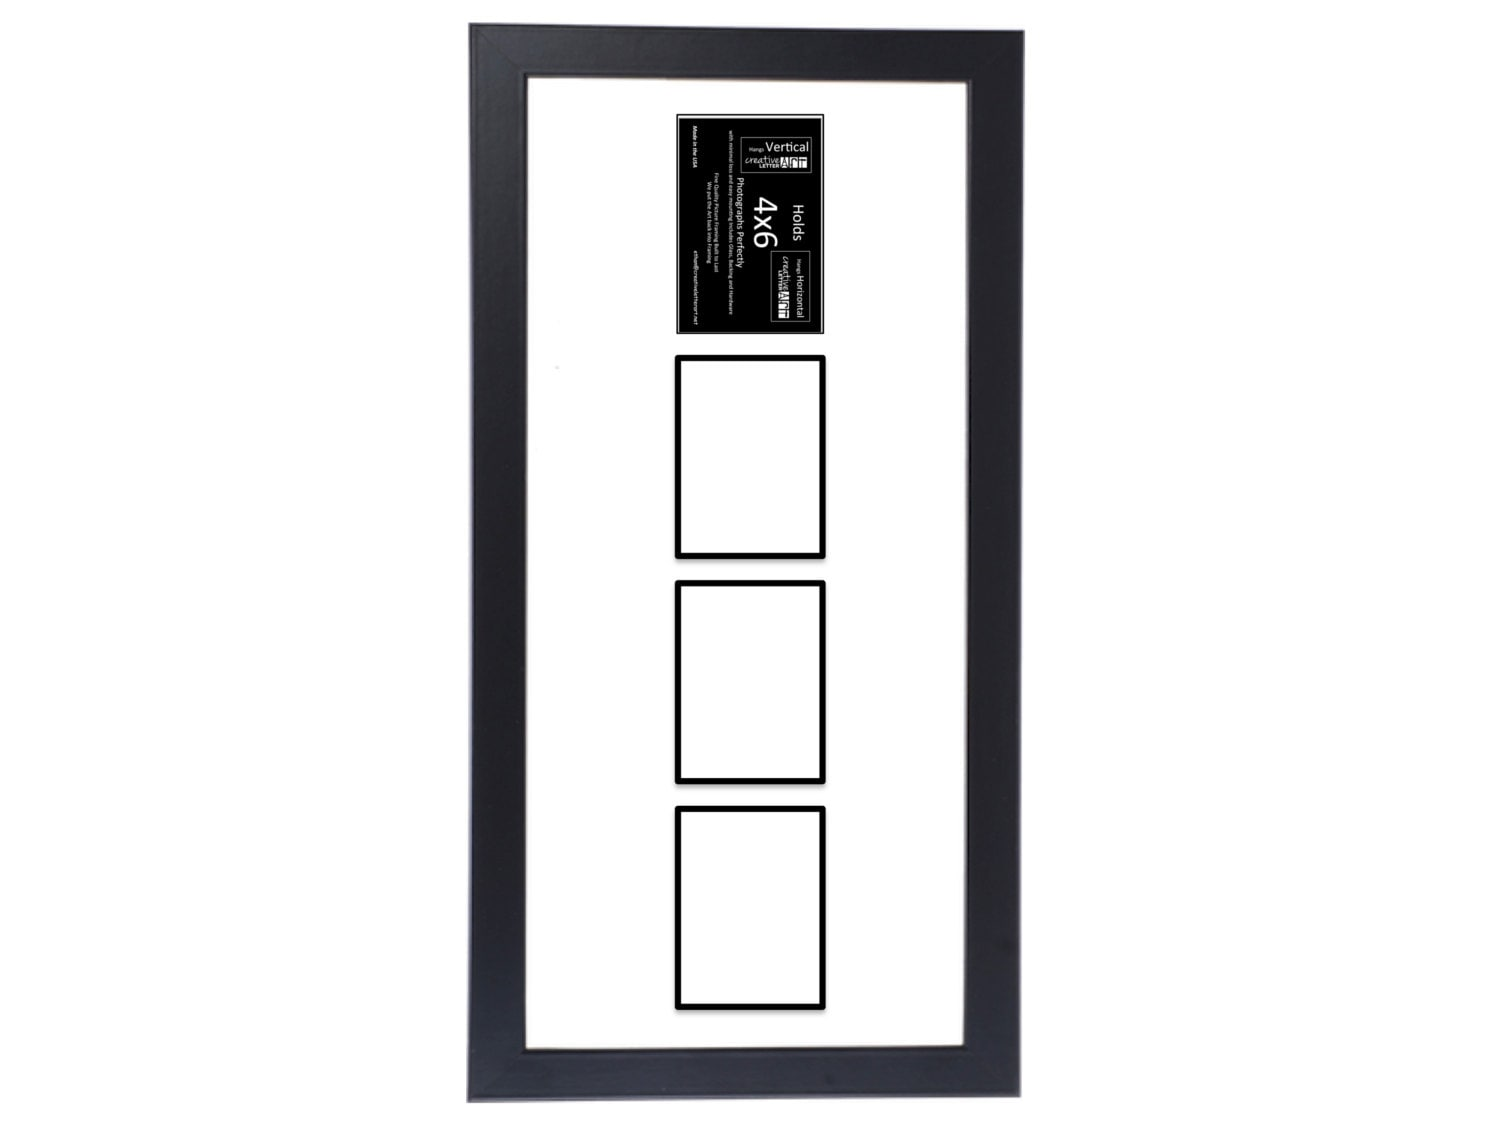 4x6 Vertical Multiple 2 3 4 5 6 Opening Black Picture Frame Etsy